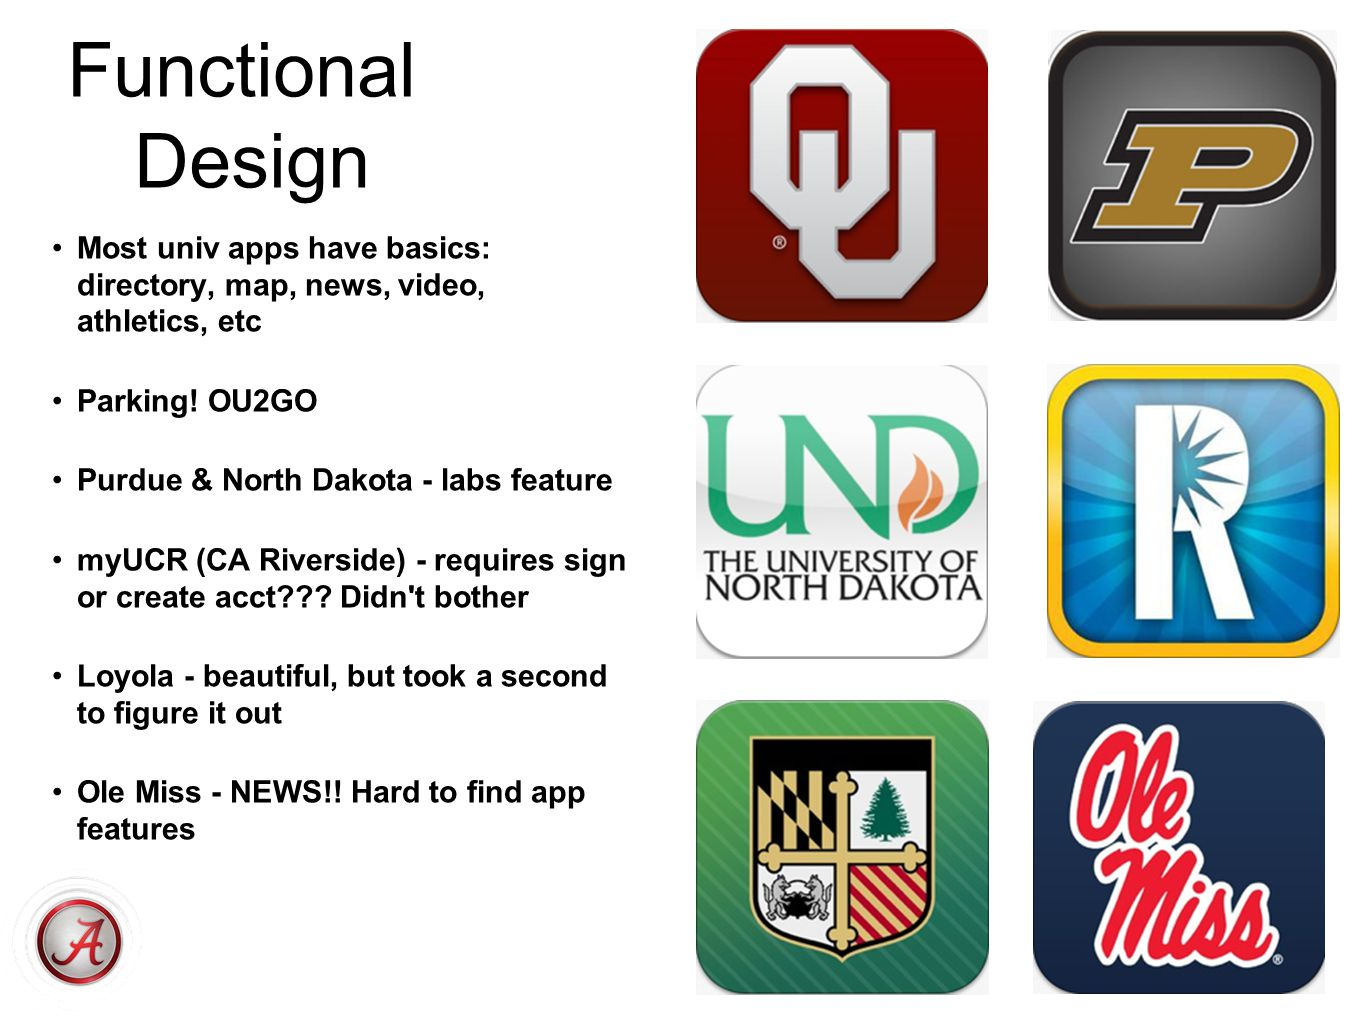 Functional Design Most univ apps have basics: directory, map, news, video, athletics, etc. Parking! OU2GO.